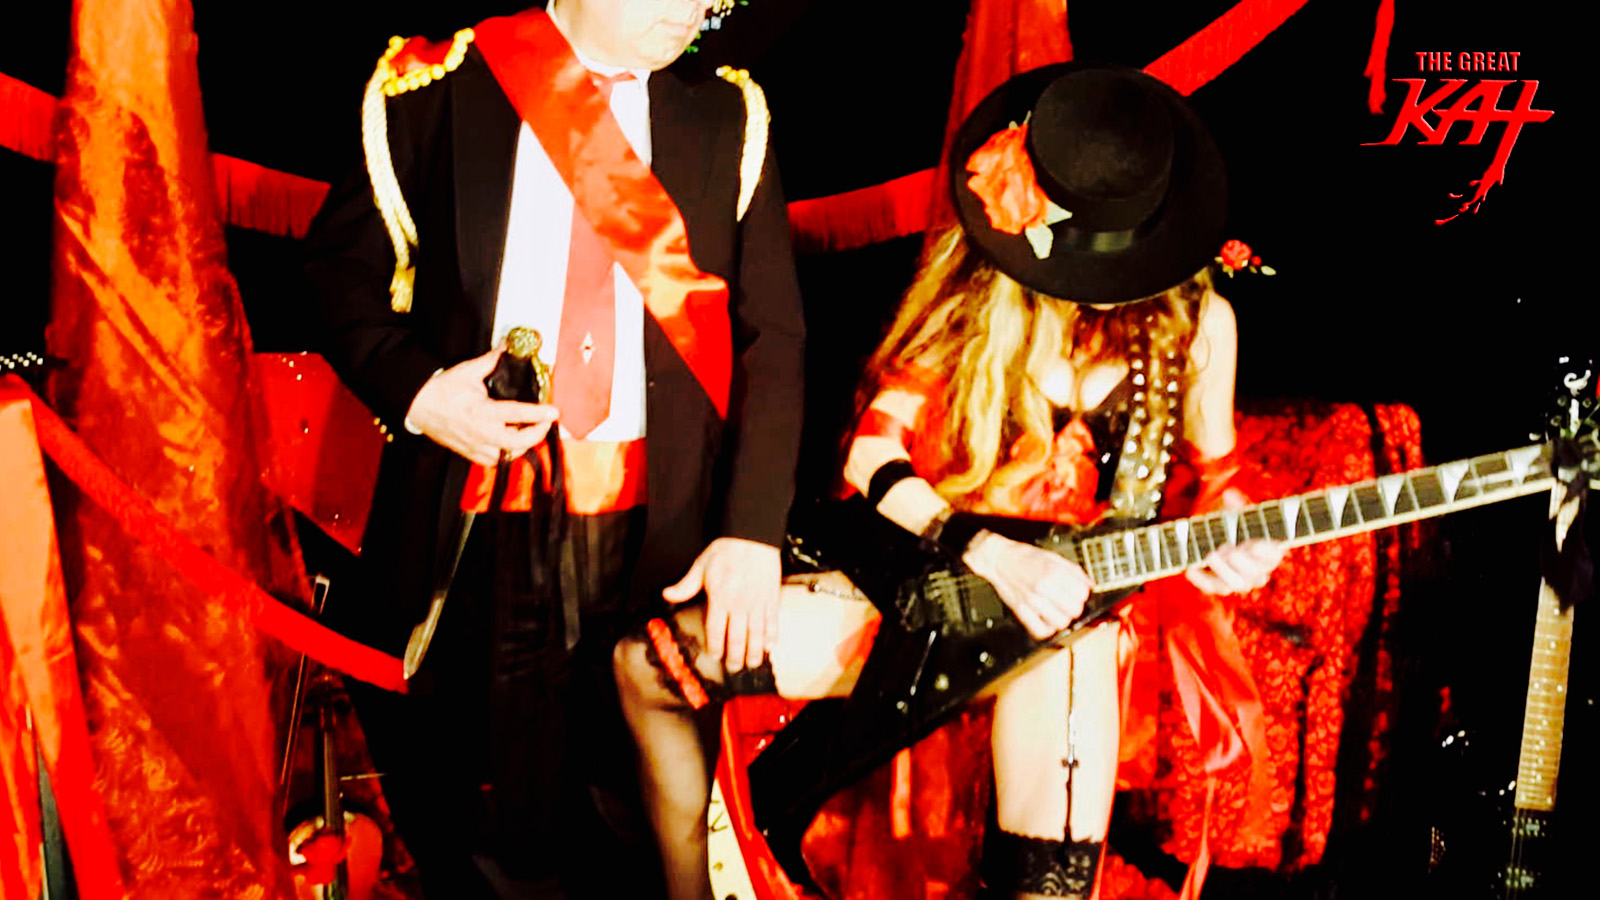 """WORSHIP THE GREAT KAT! From The Great Kat's SARASATE'S """"CARMEN FANTASY"""" MUSIC VIDEO!"""